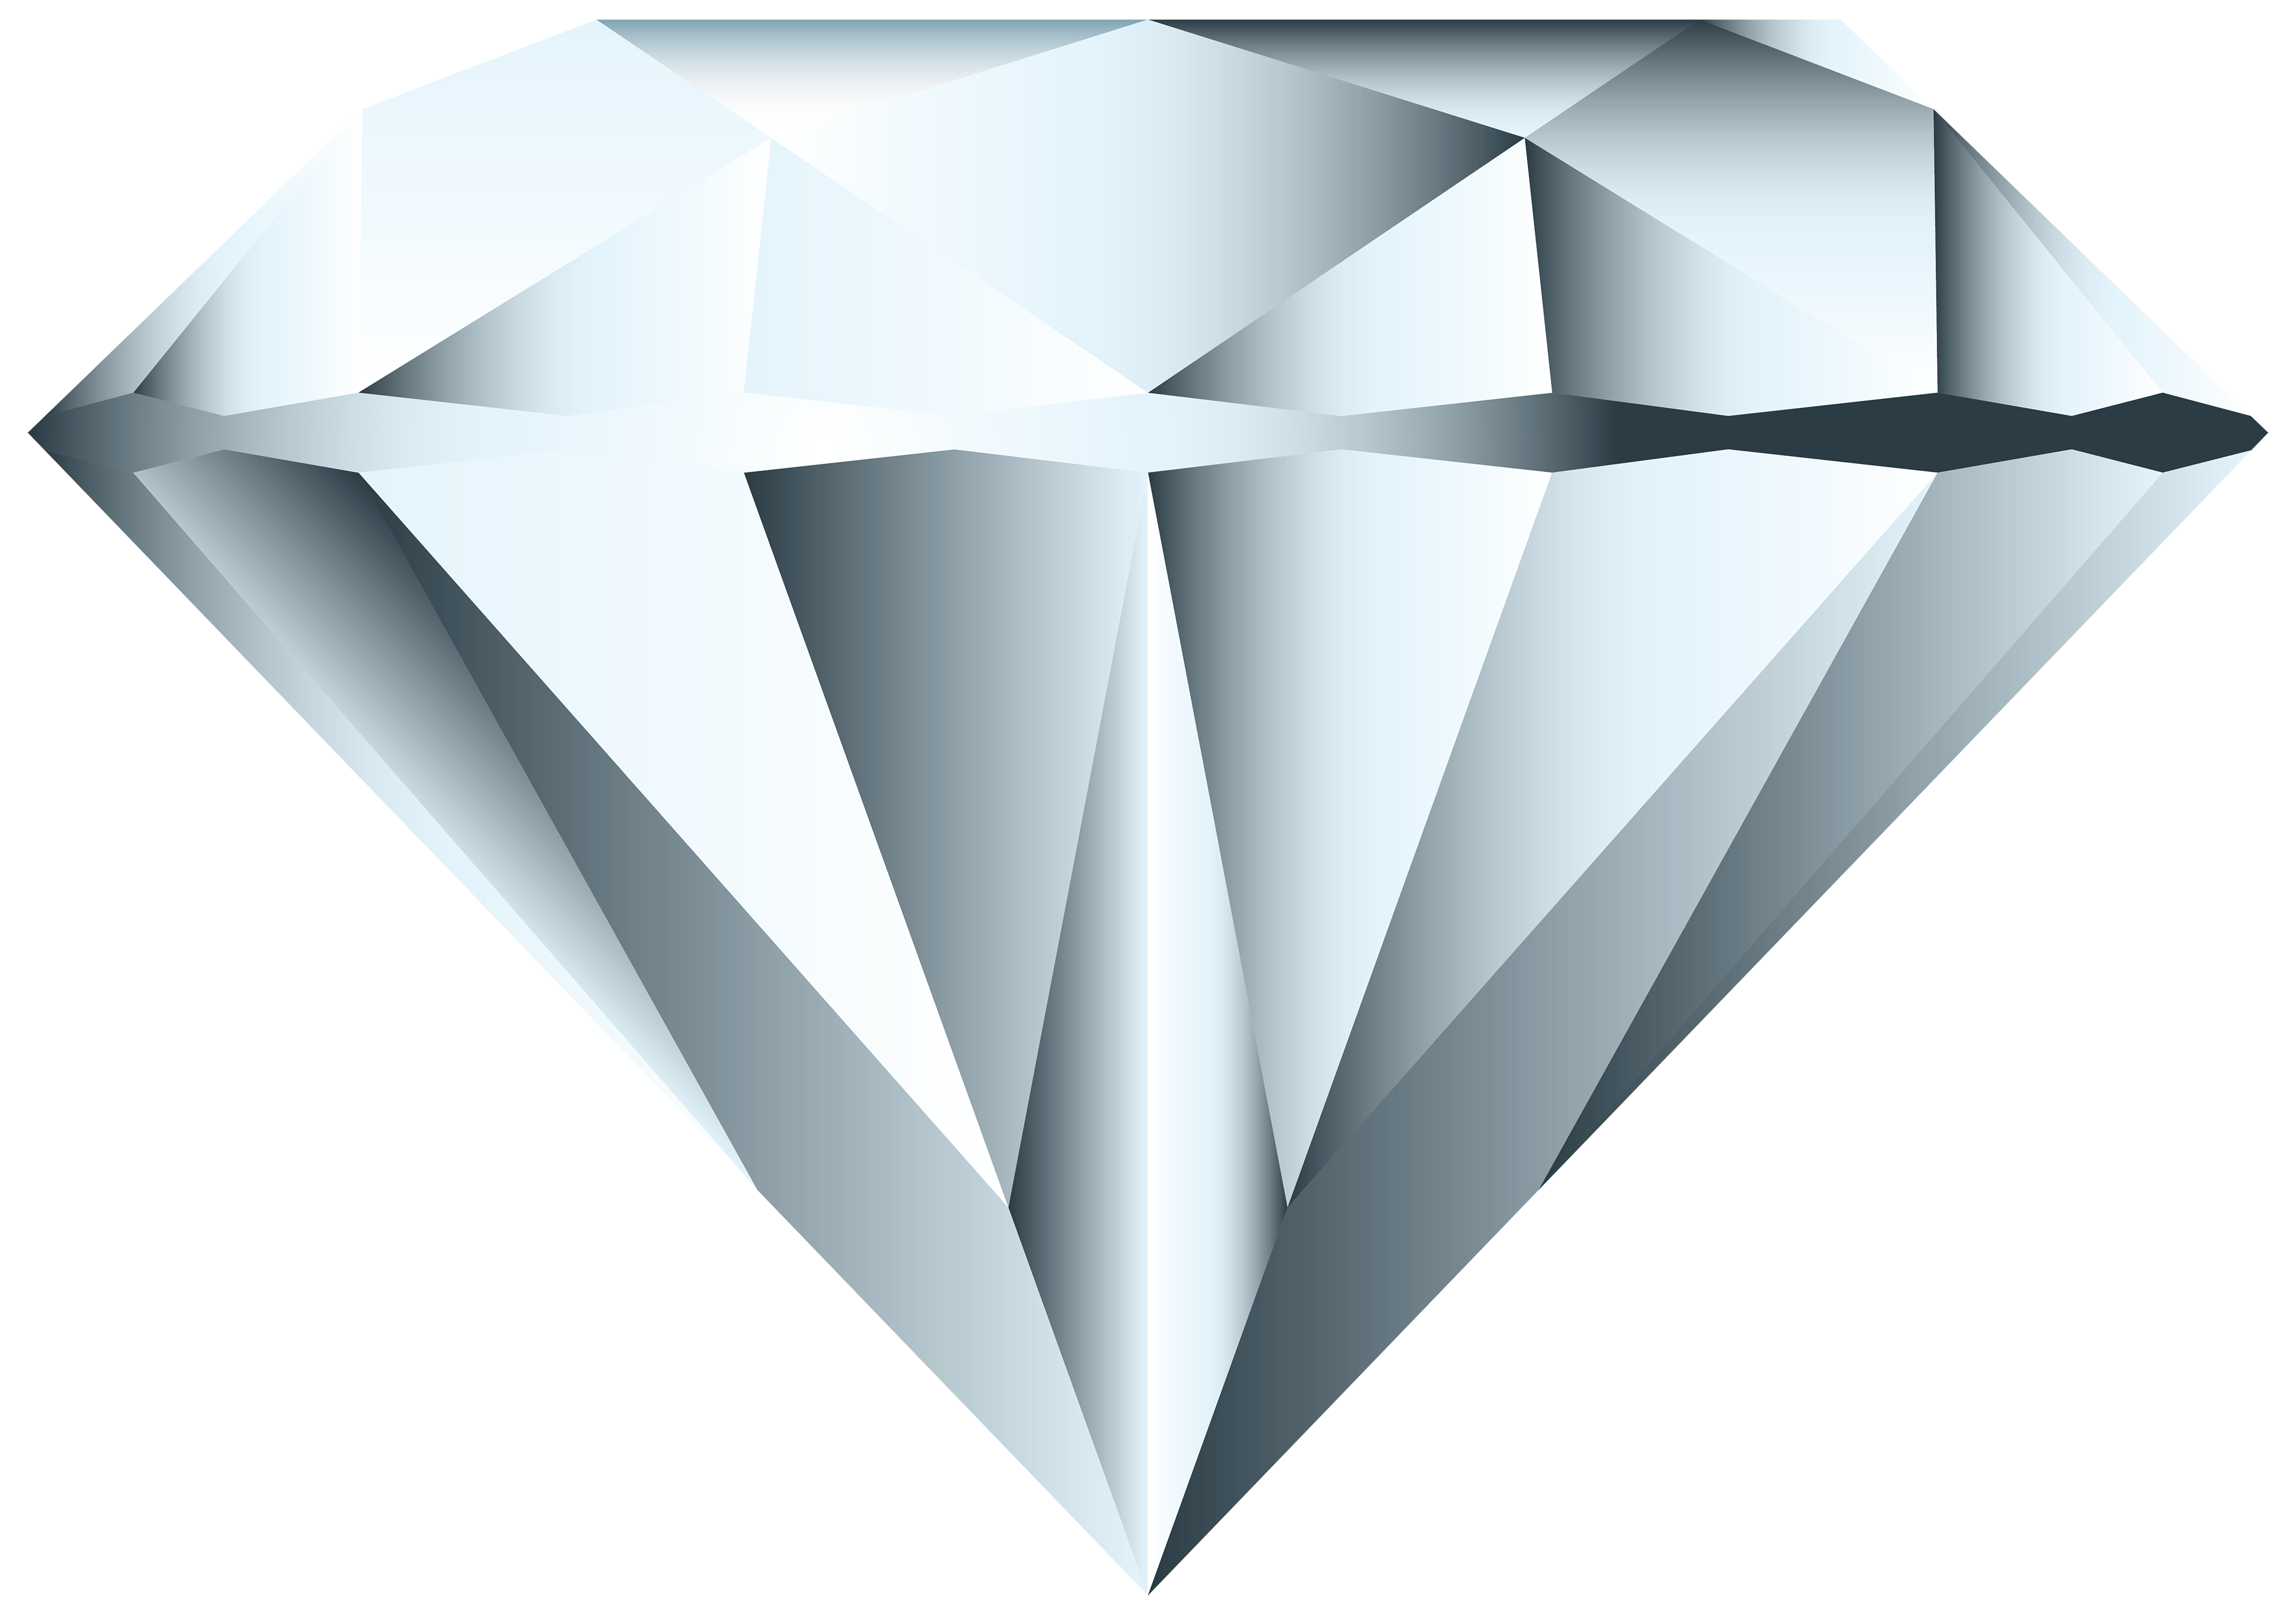 Diamond clipart #17, Download drawings